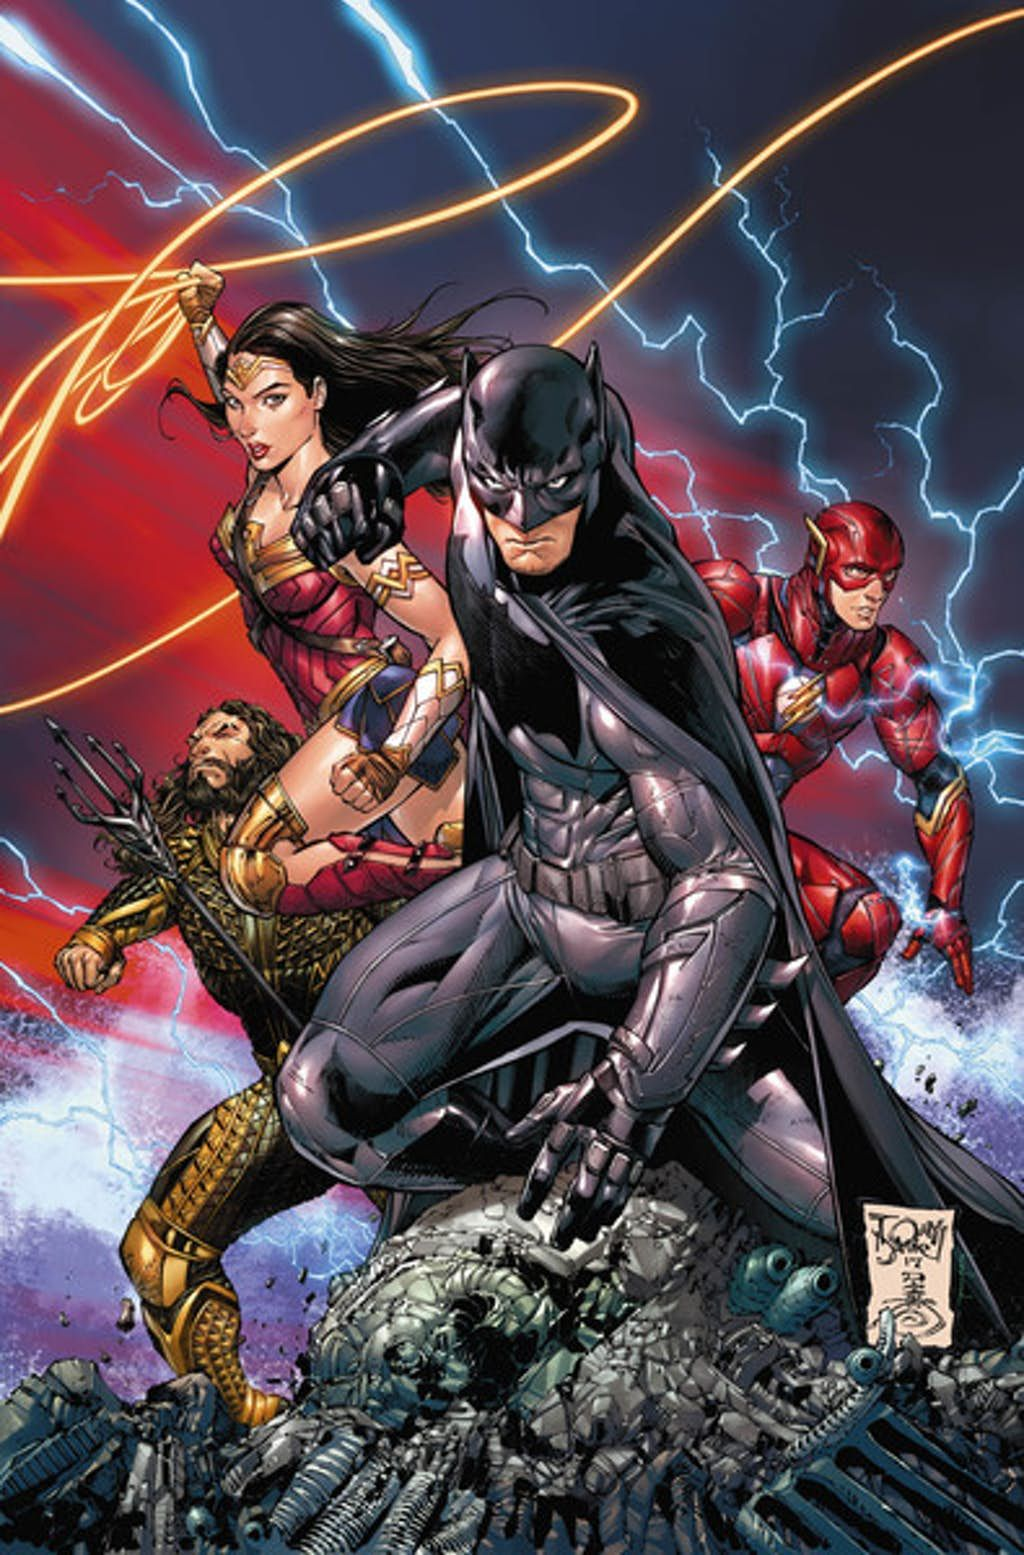 Comics Final Justice League Movie Variant Covers Put The